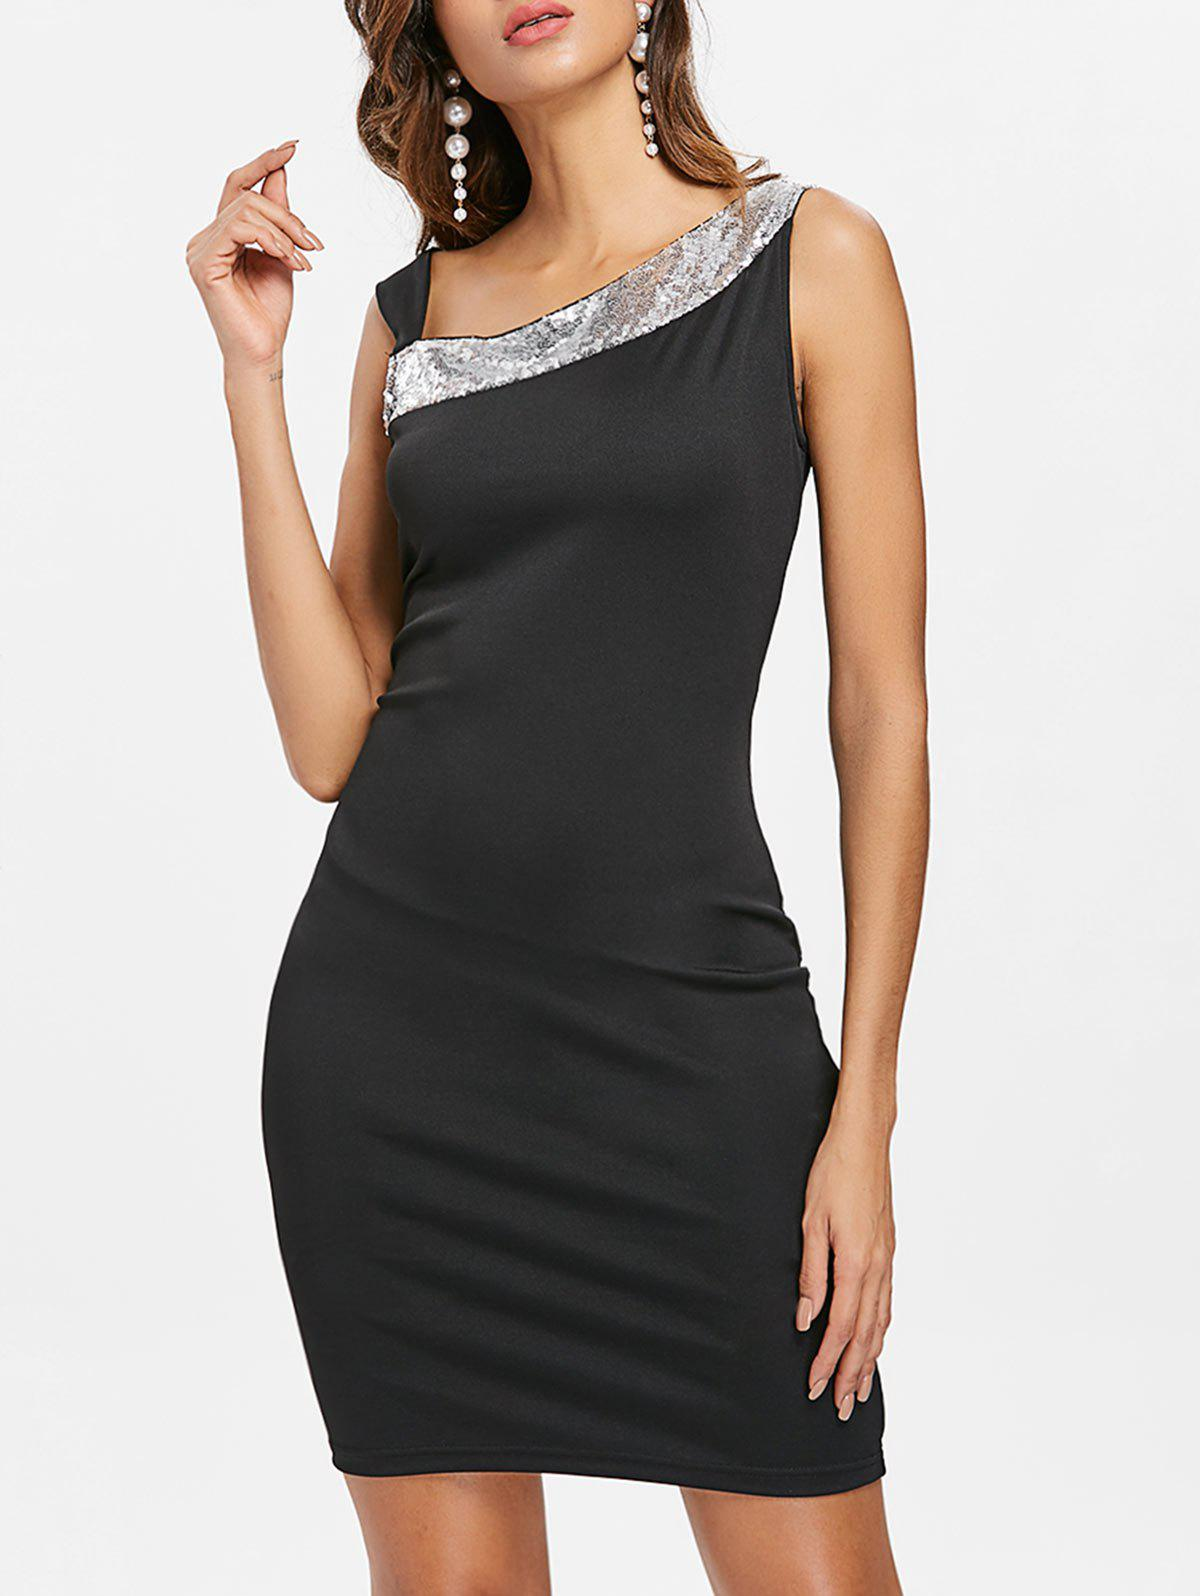 Discount Skew Neck Sequined Dress